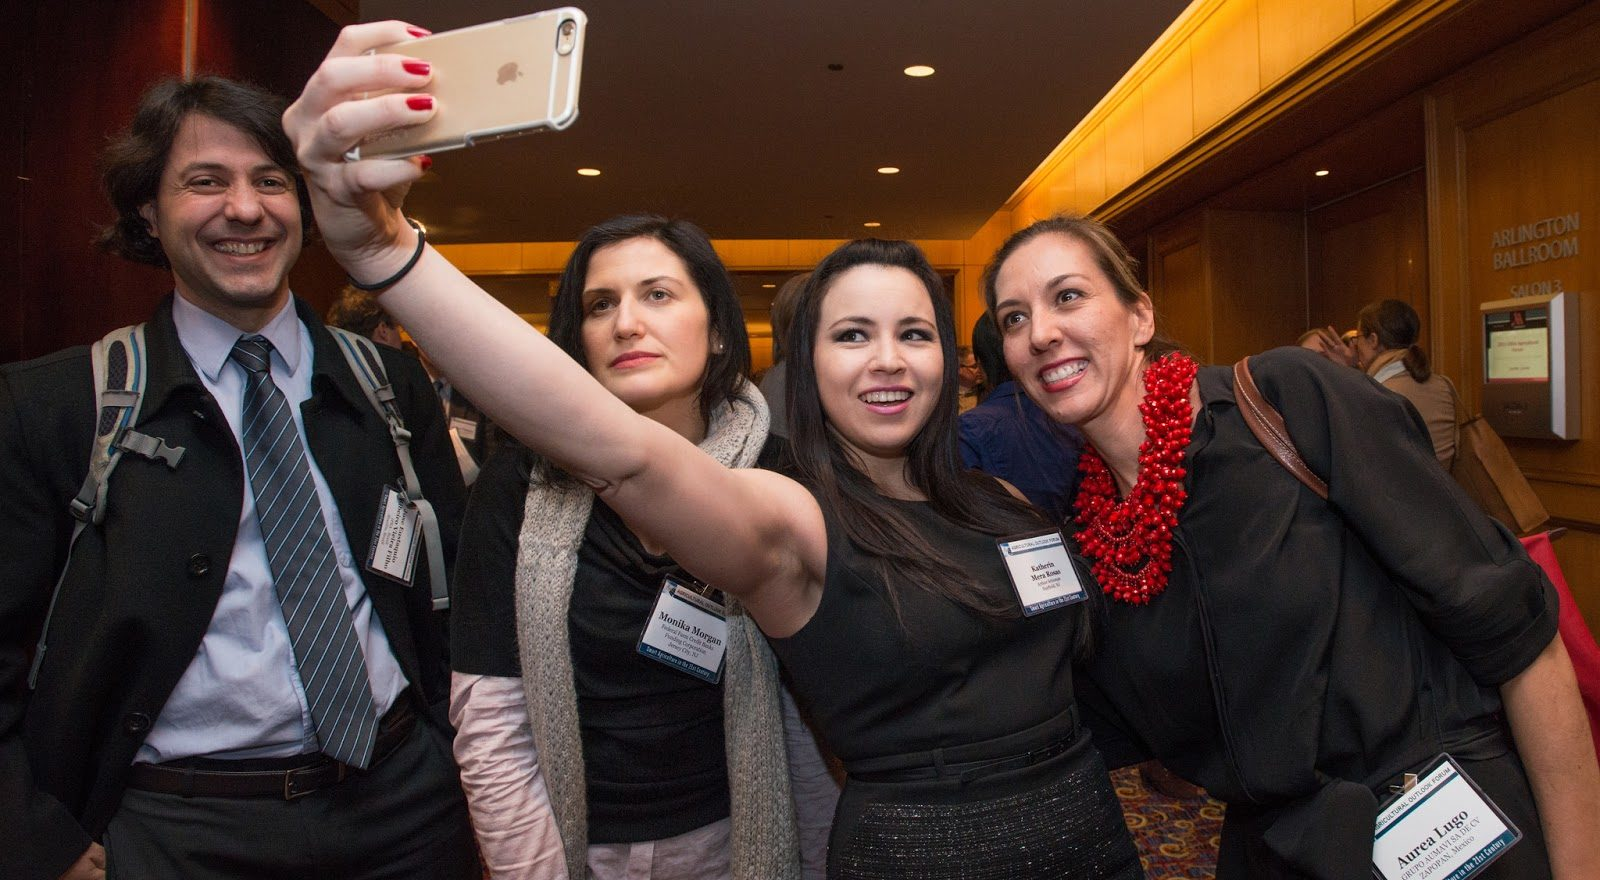 group selfie at a professional networking event